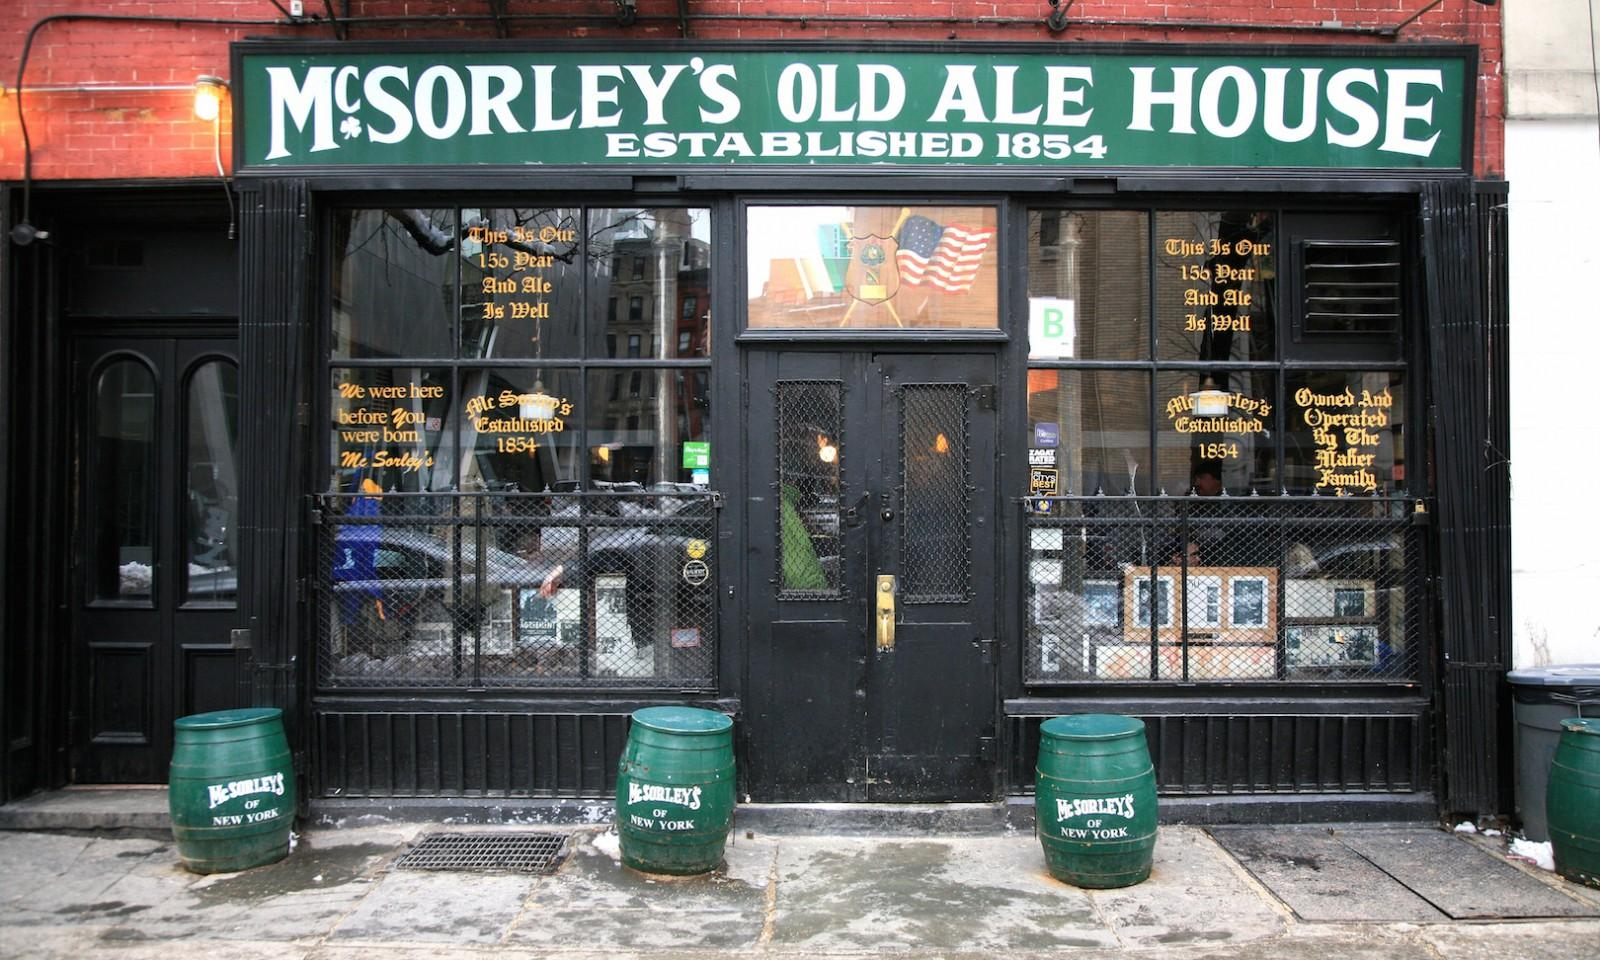 McSorleys-Old-Ale-House-New-York-1600x960